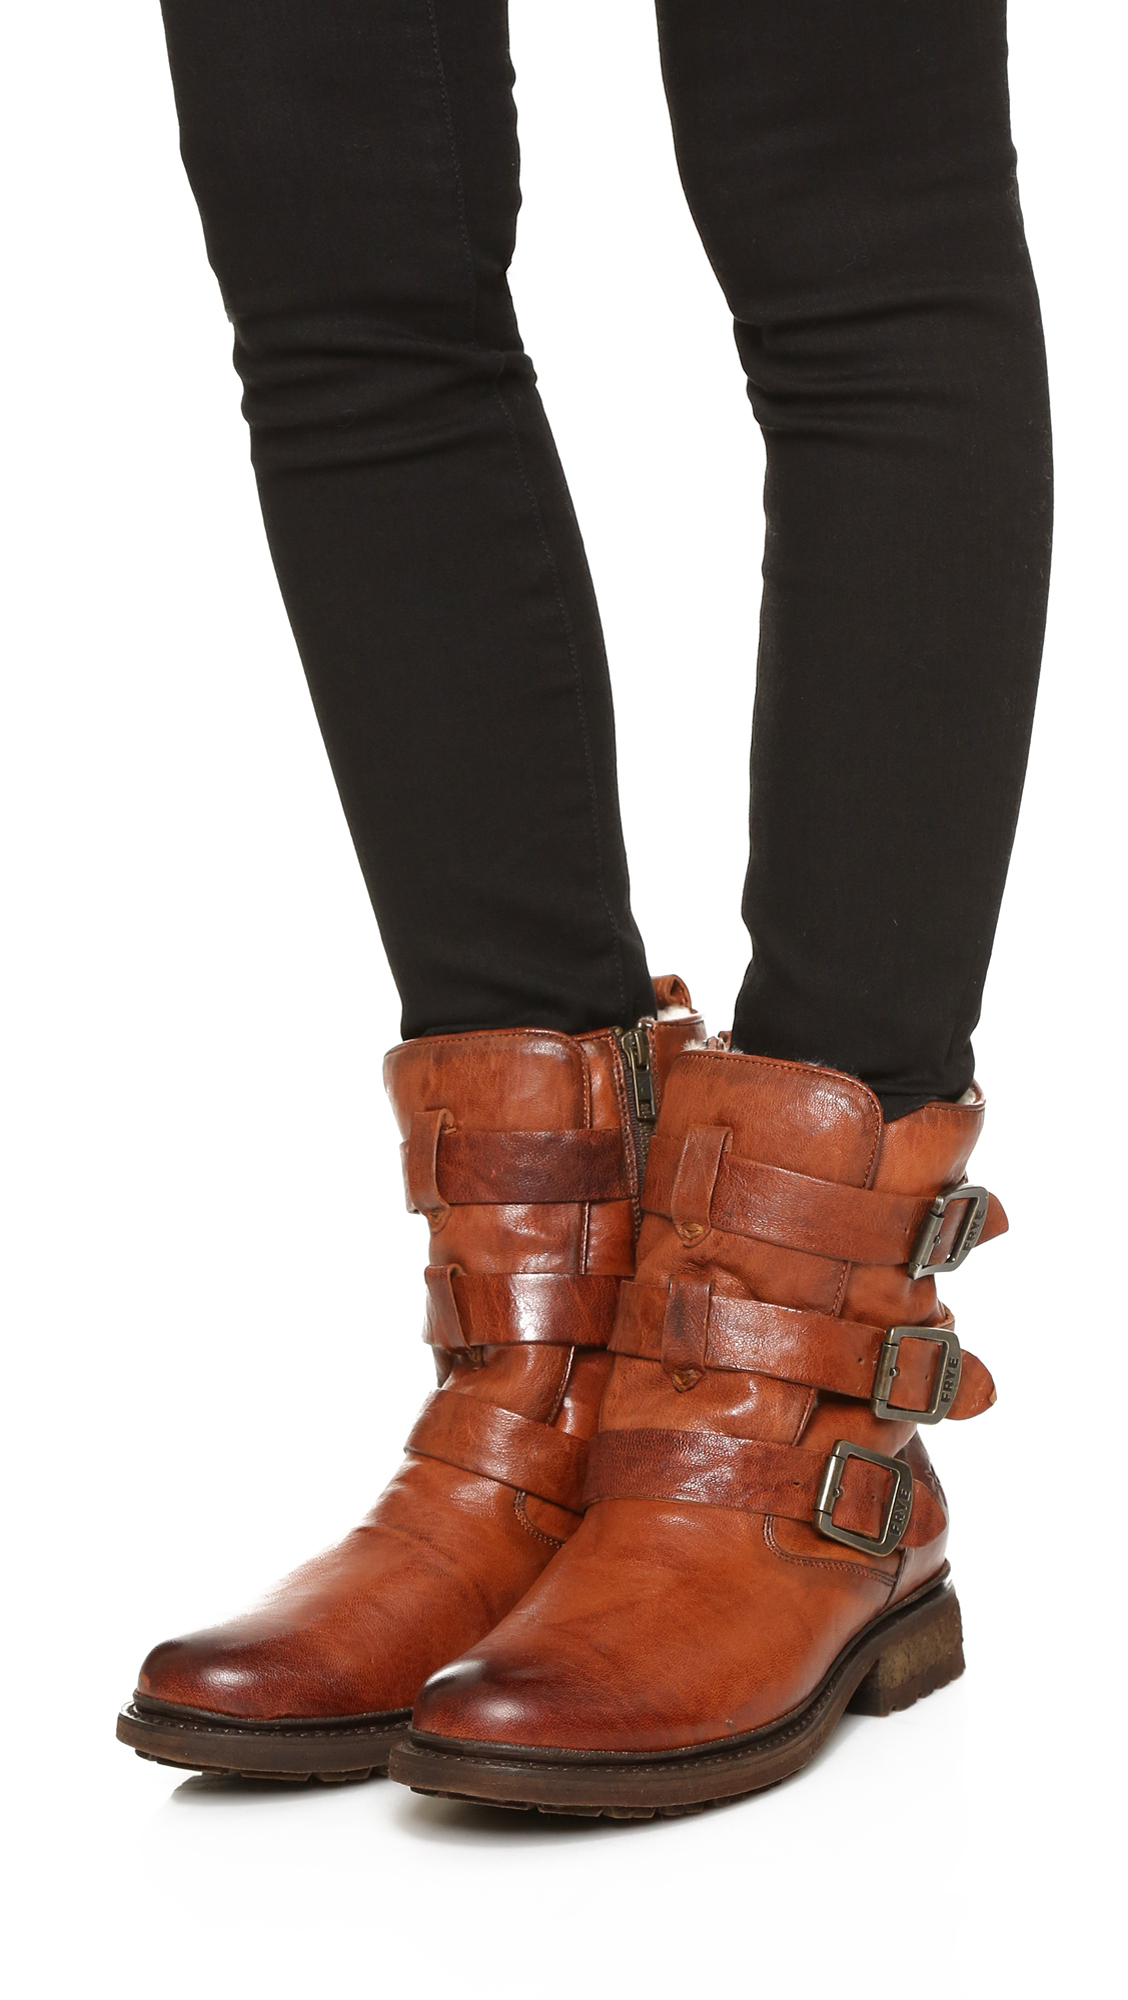 Women's Valerie Shearling Strappy Ankle Boot